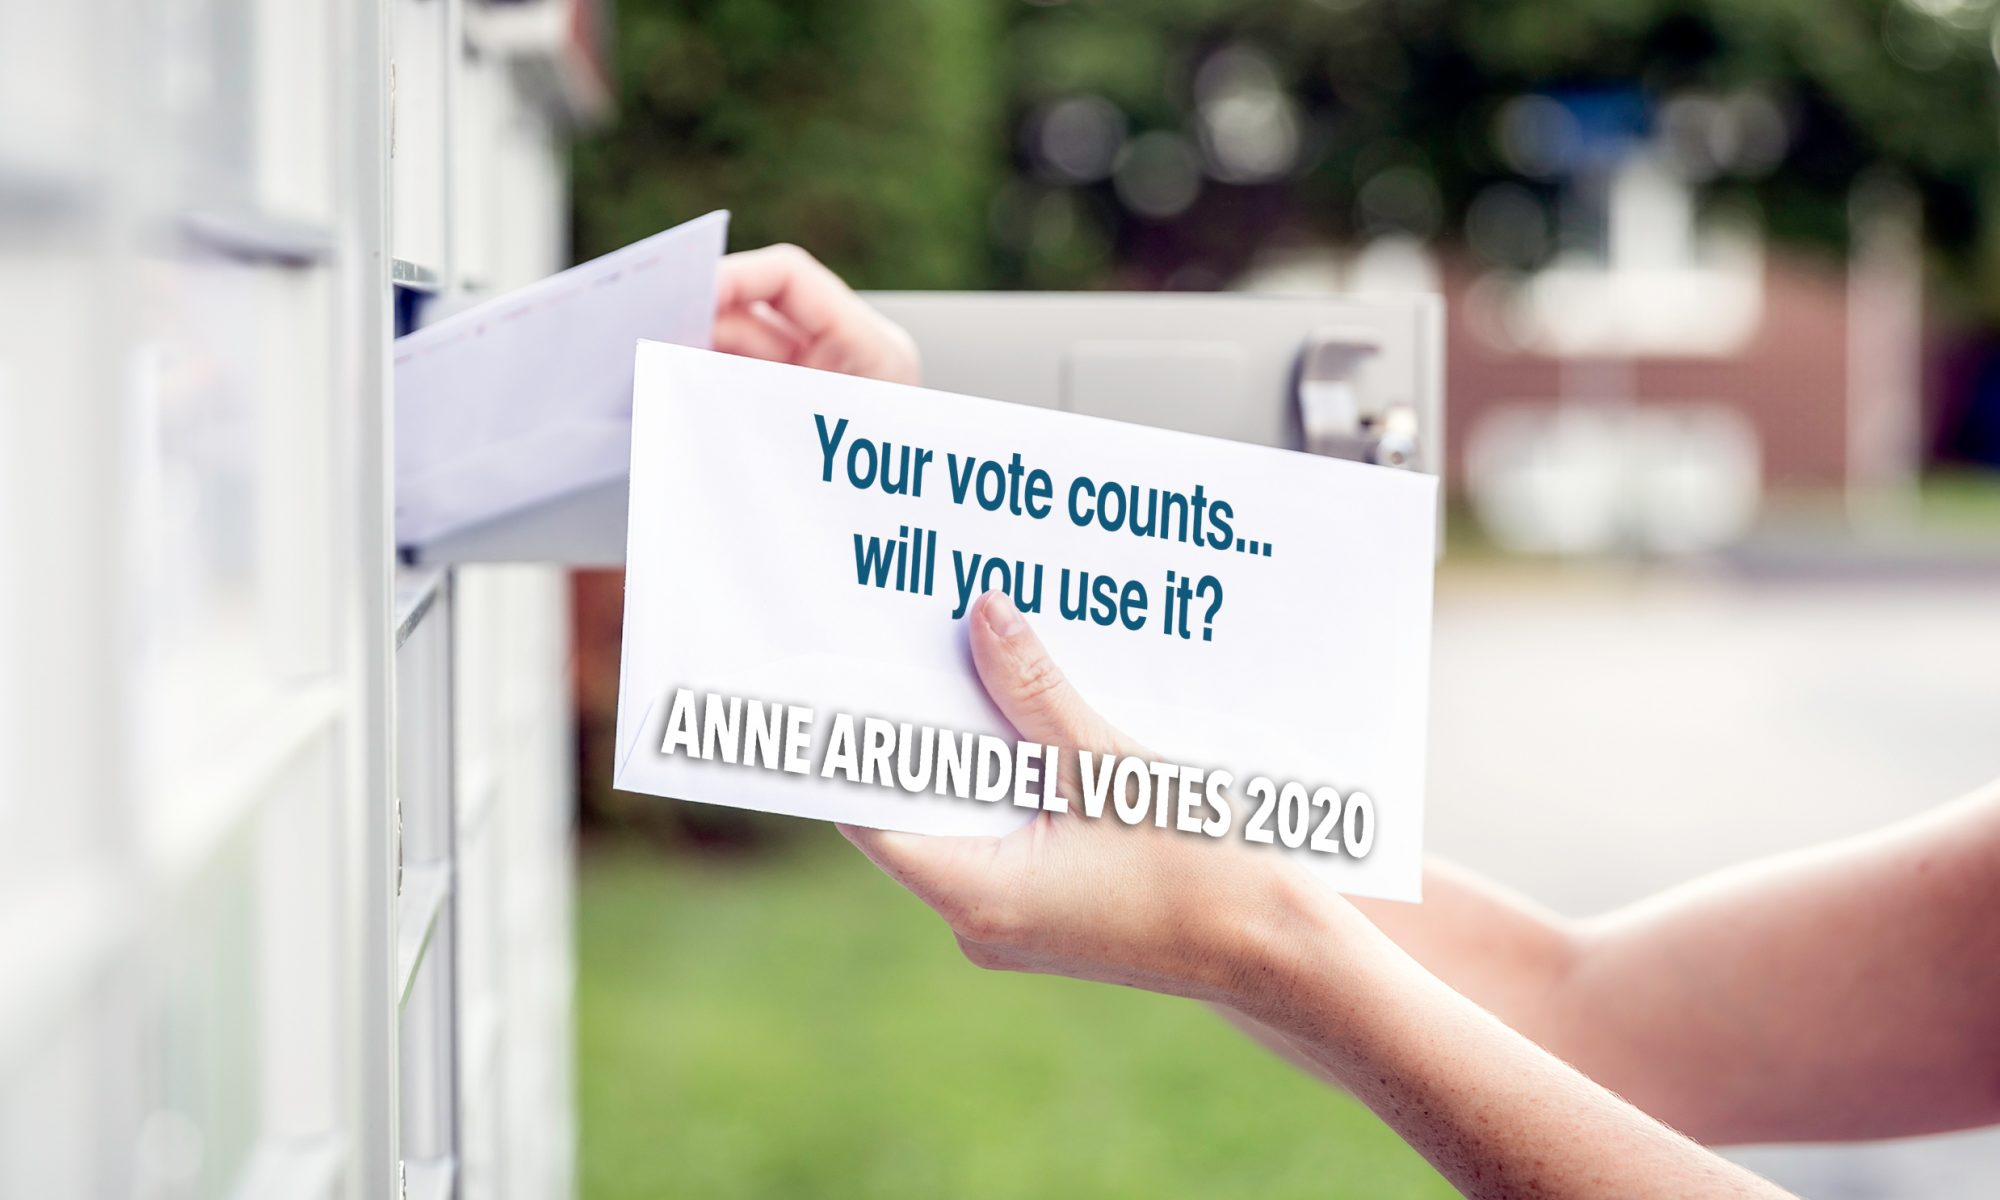 Anne Arundel Votes